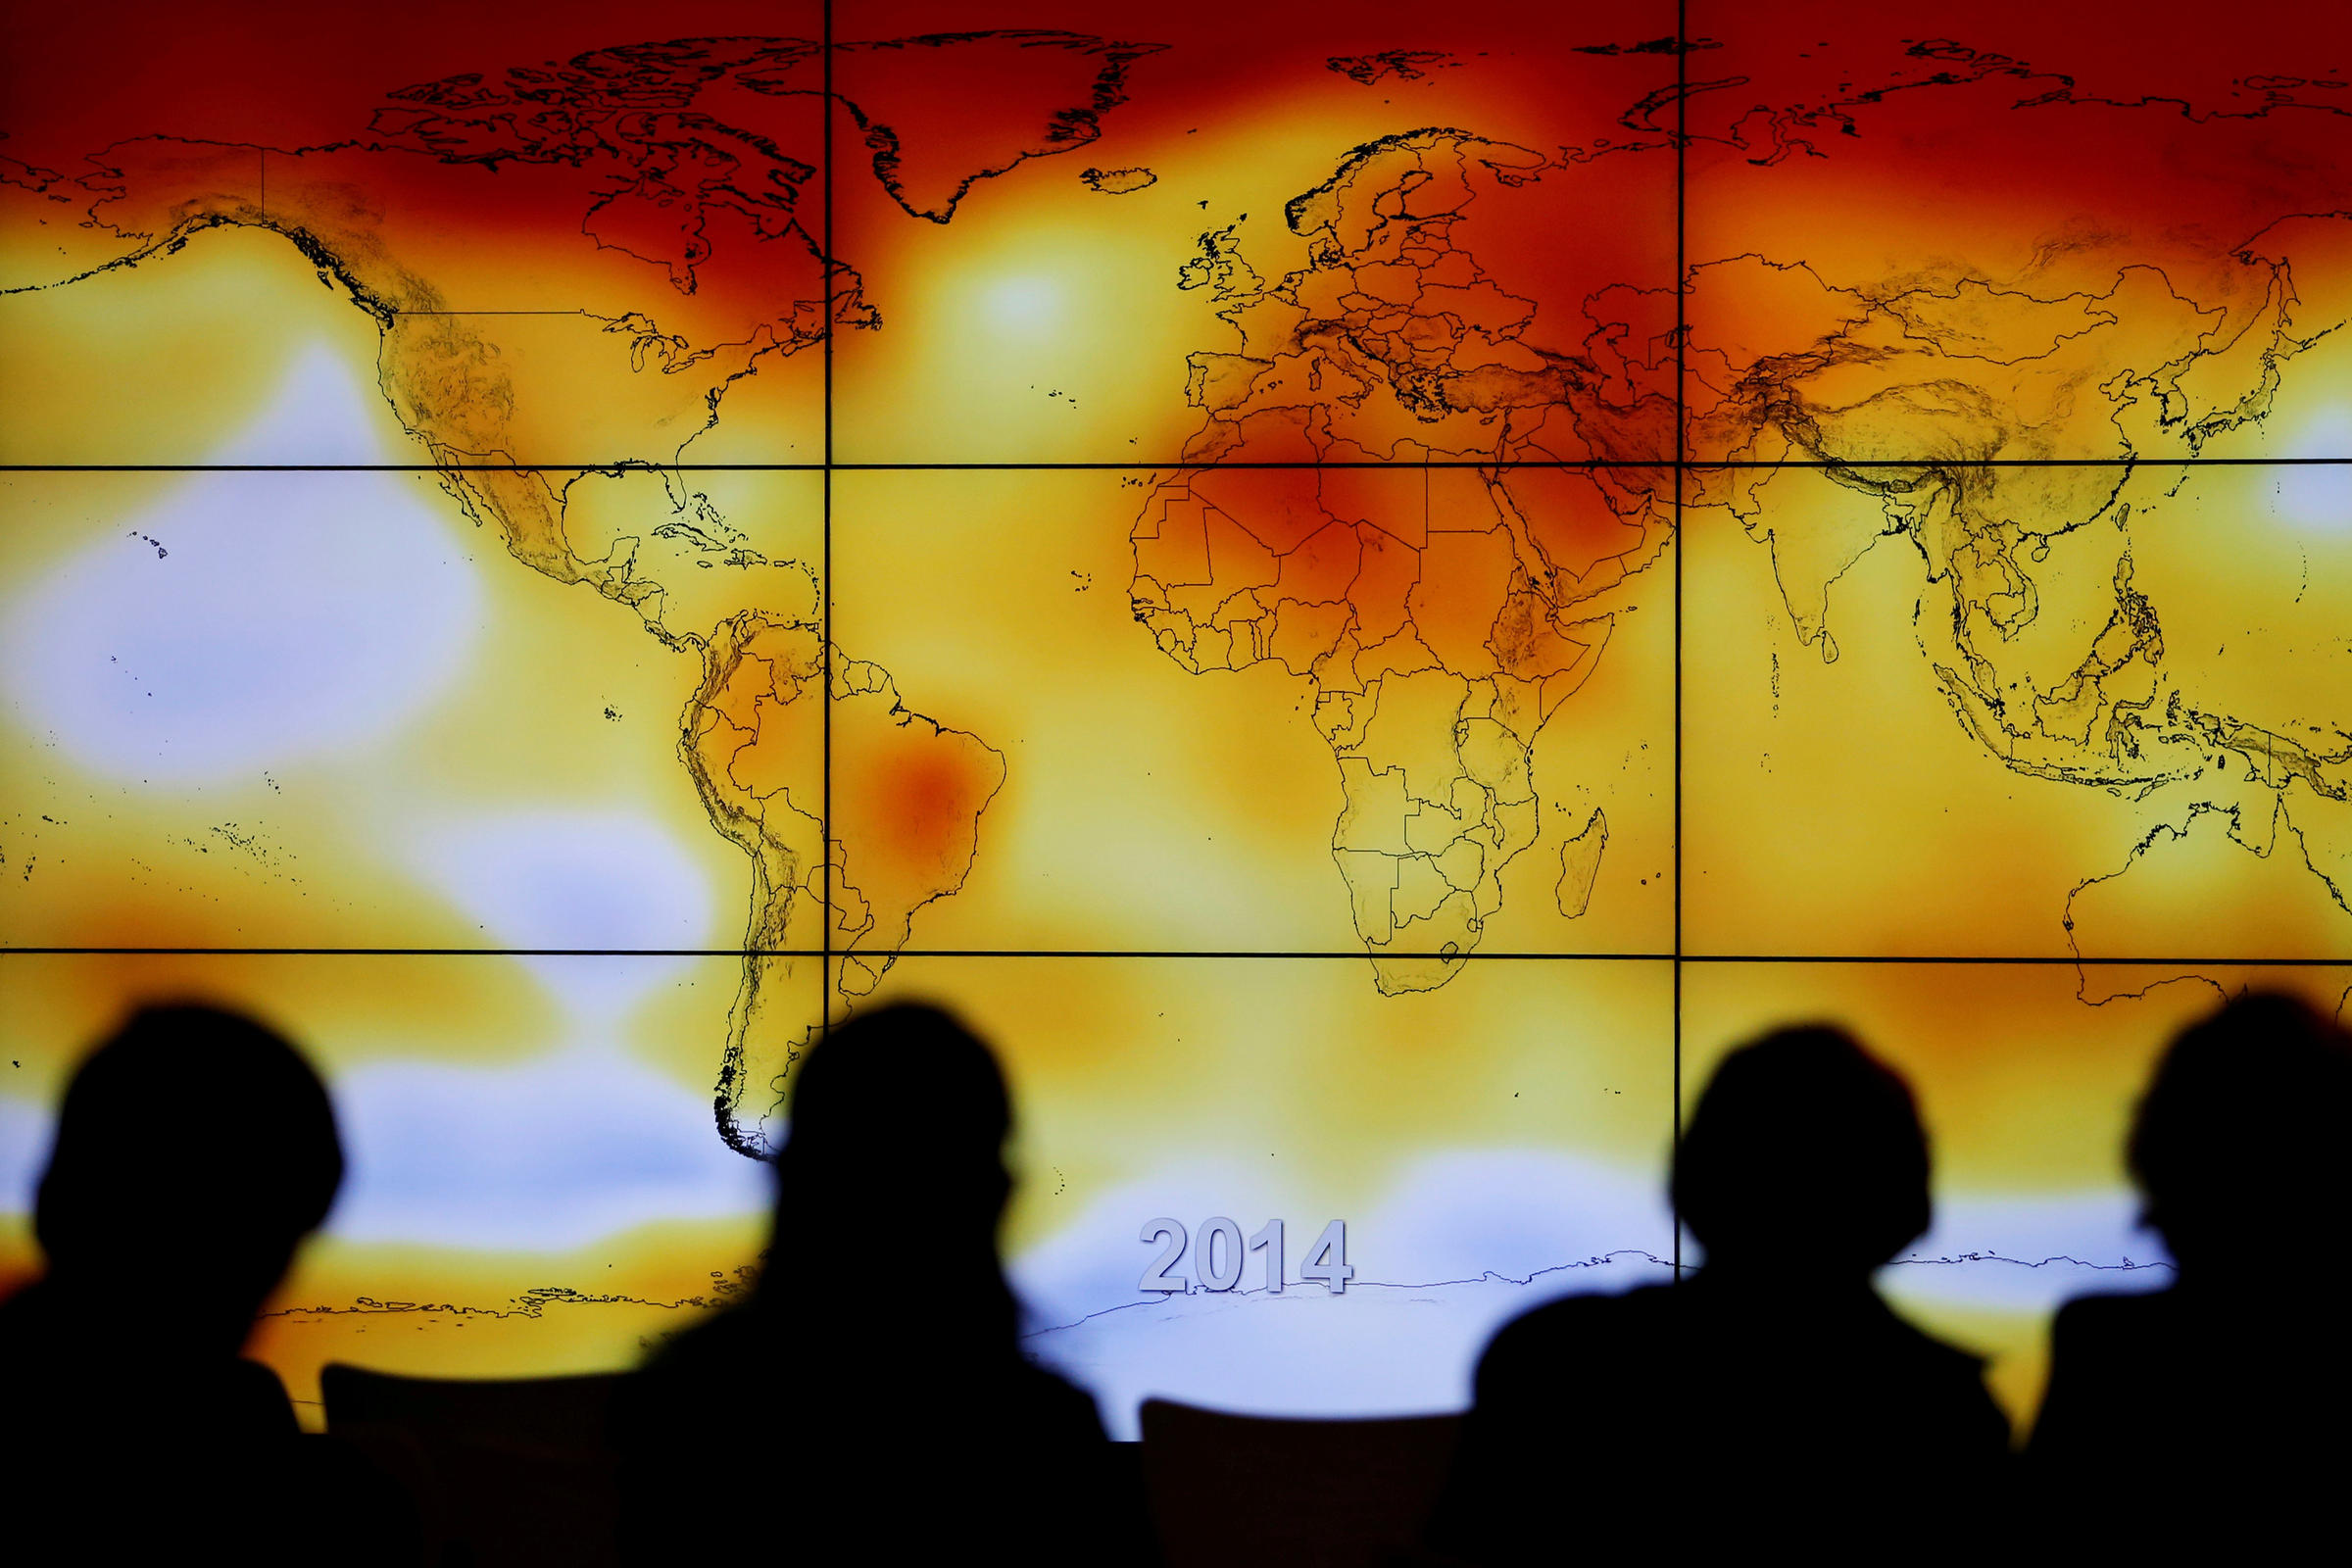 U.S. Already Feeling Consequences Of Global Warming, Draft ...